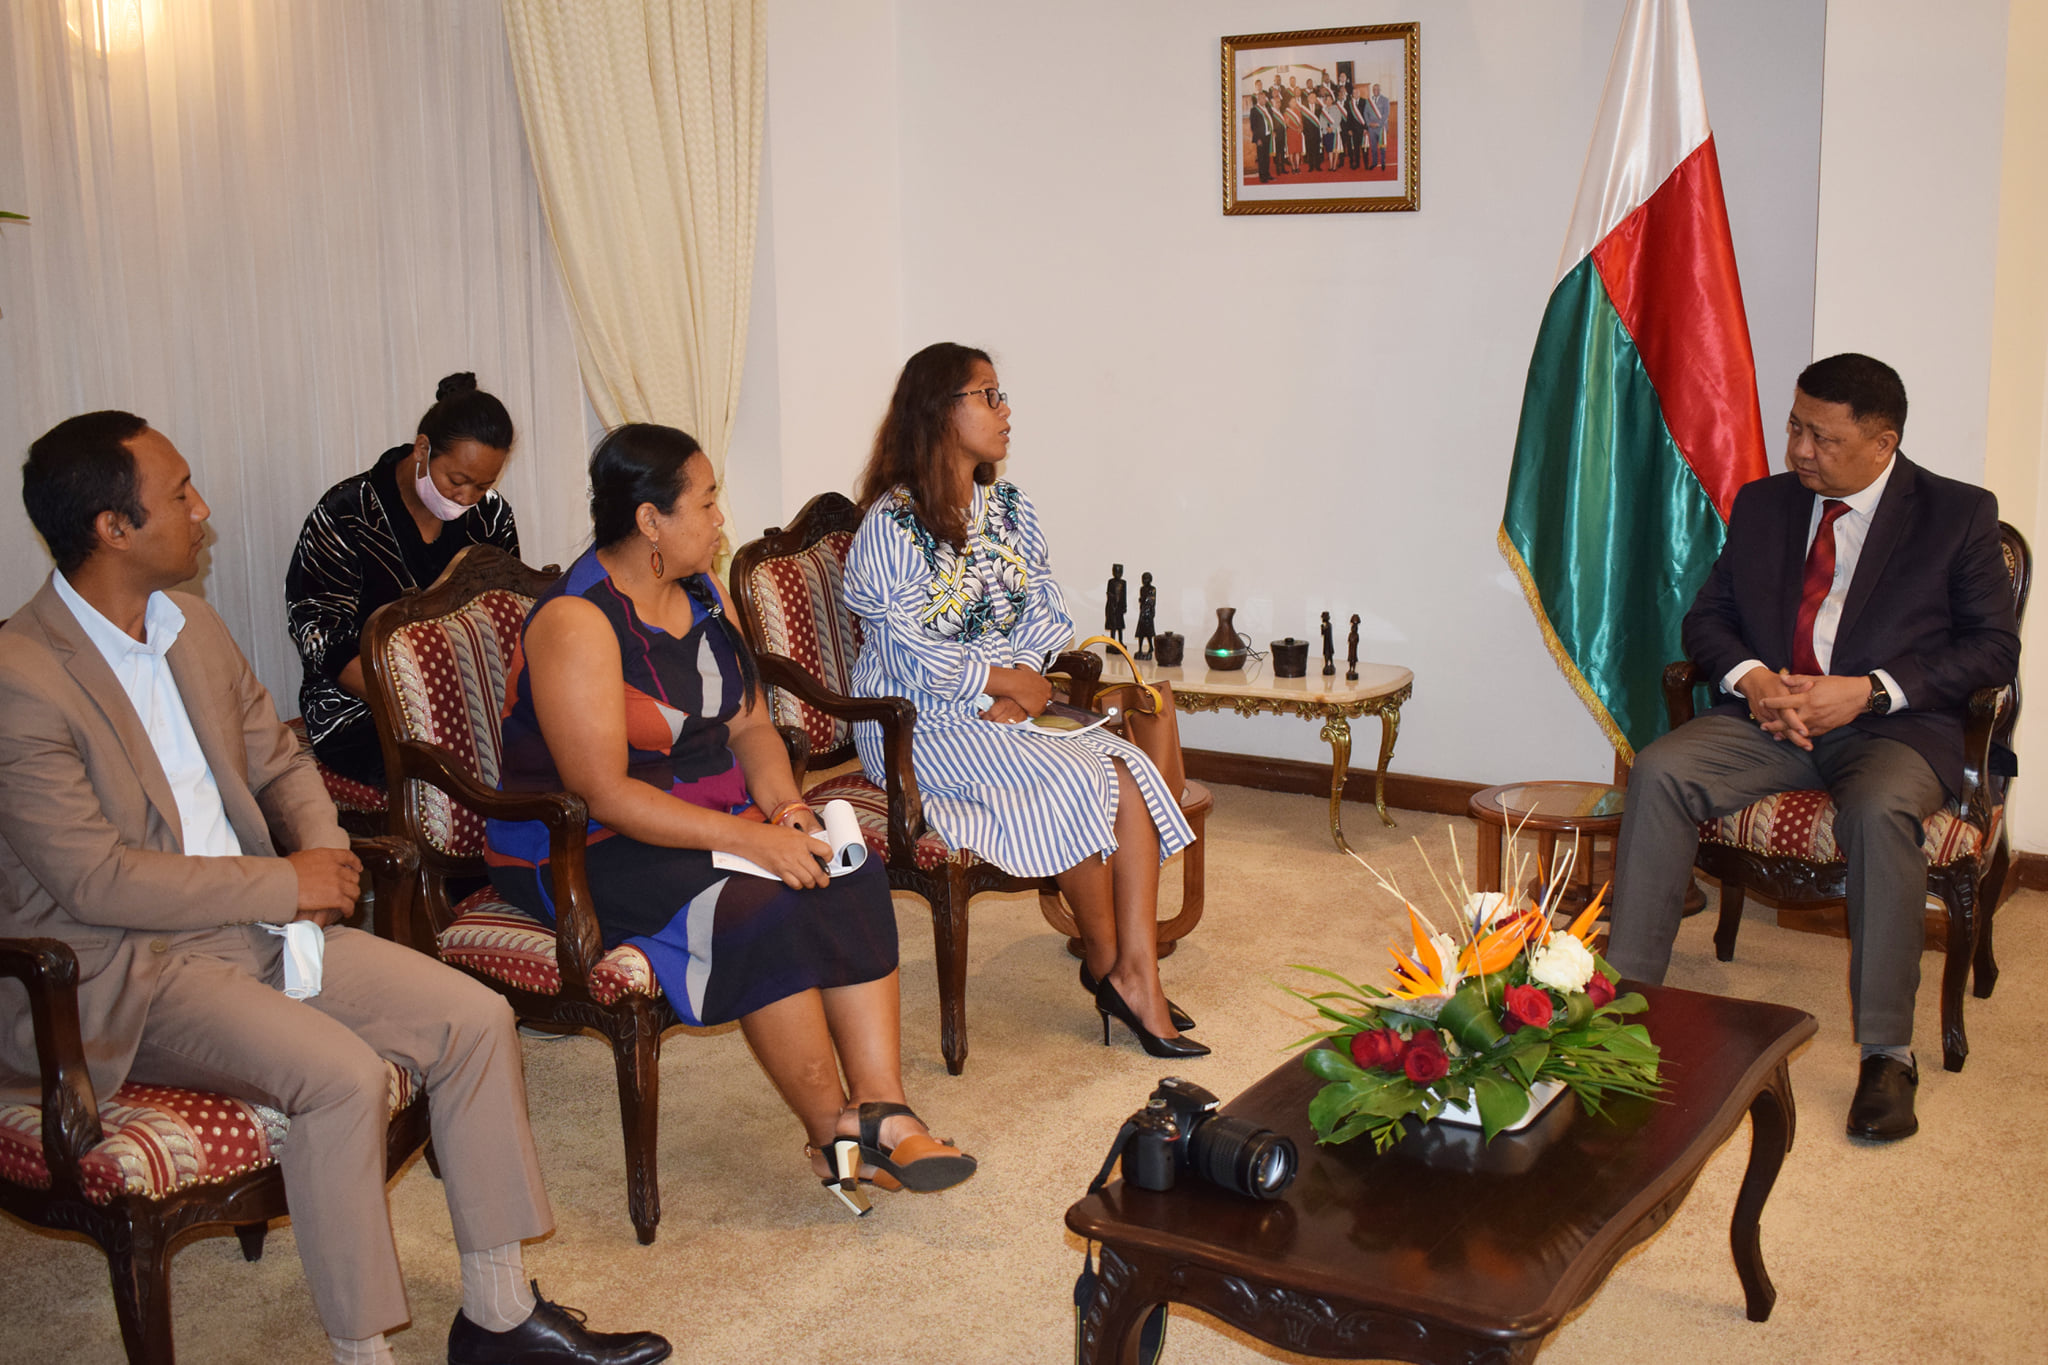 EISA Madagascar Country Representative, Jessica Ranohefy, being received by the Speaker of the President of the Senate of Madagascar, Mr. Razafimahefa Herimanana and her team in March 2021